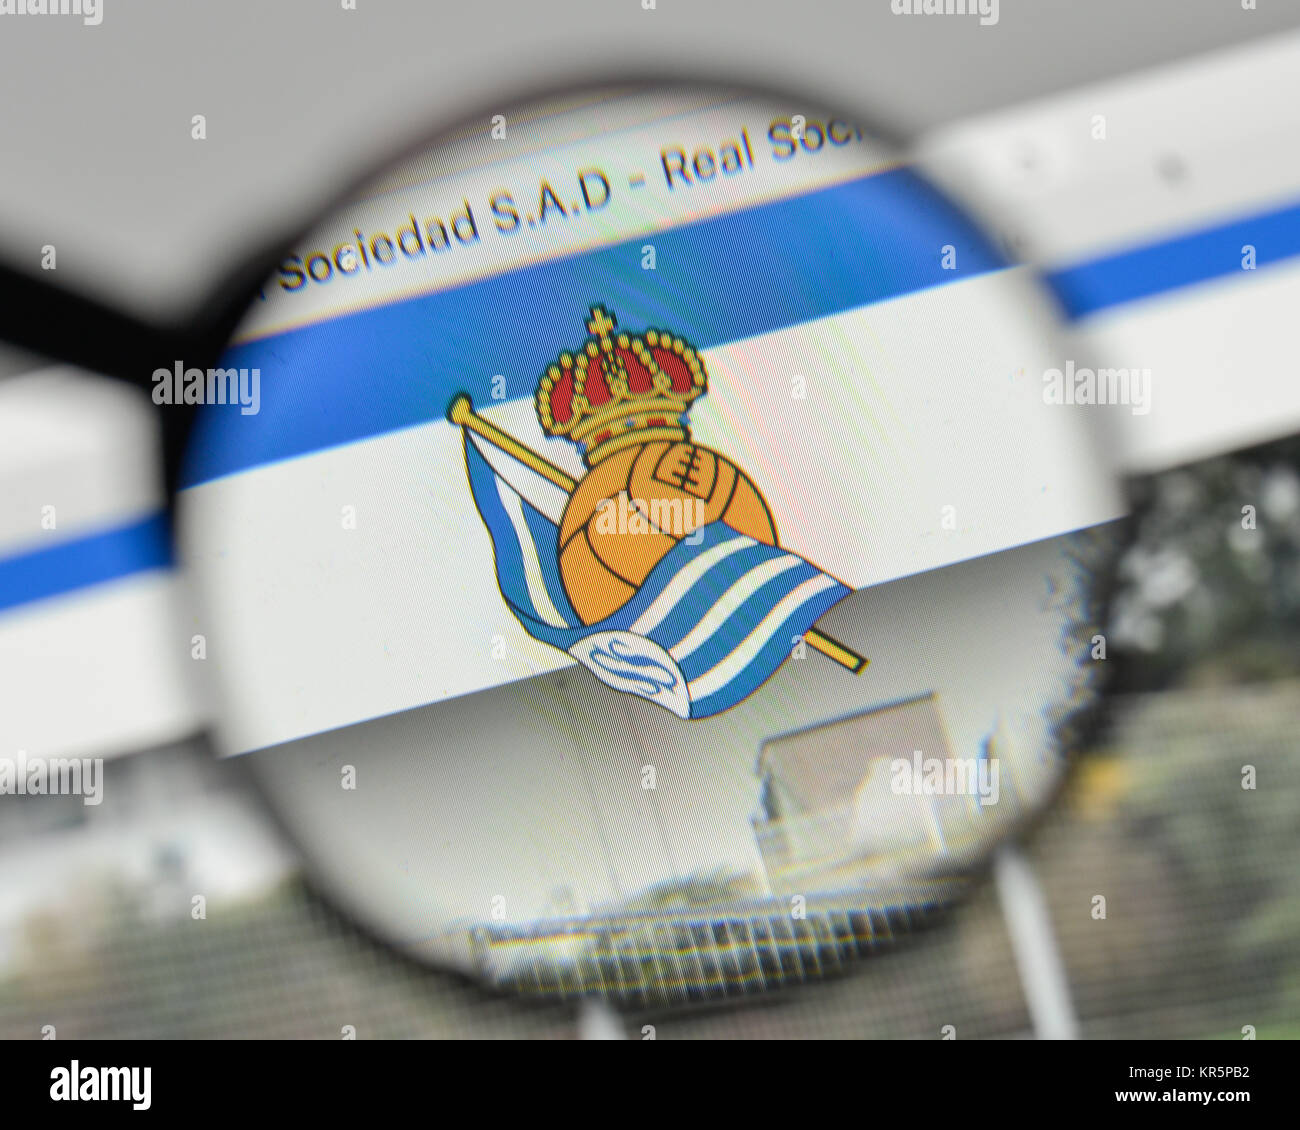 Milan, Italy - November 1, 2017: Real Sociedad logo on the website homepage. - Stock Image